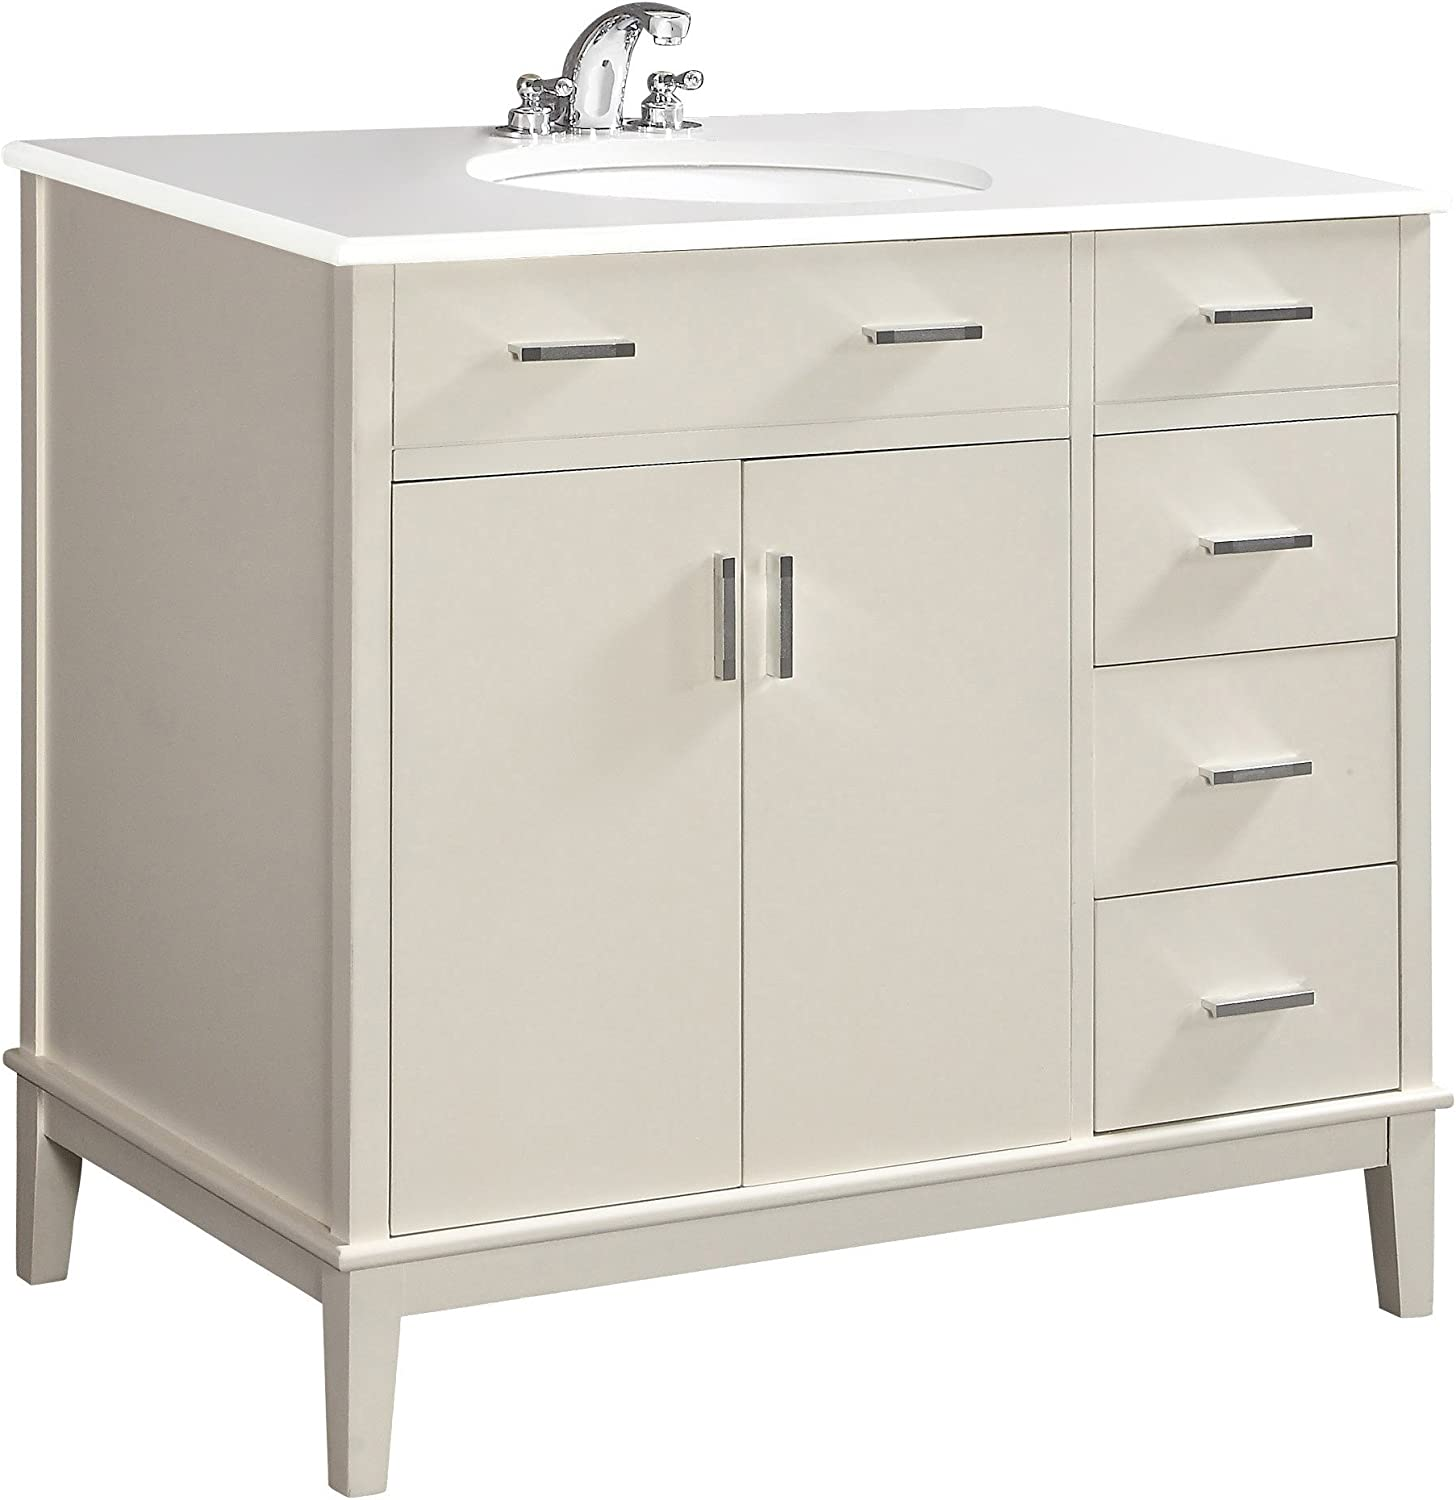 Simpli Home NL-URBAN-SW-36-2A Urban Loft 36 inch Contemporary Bath Vanity in Soft White with White Engineered Quartz Marble Top